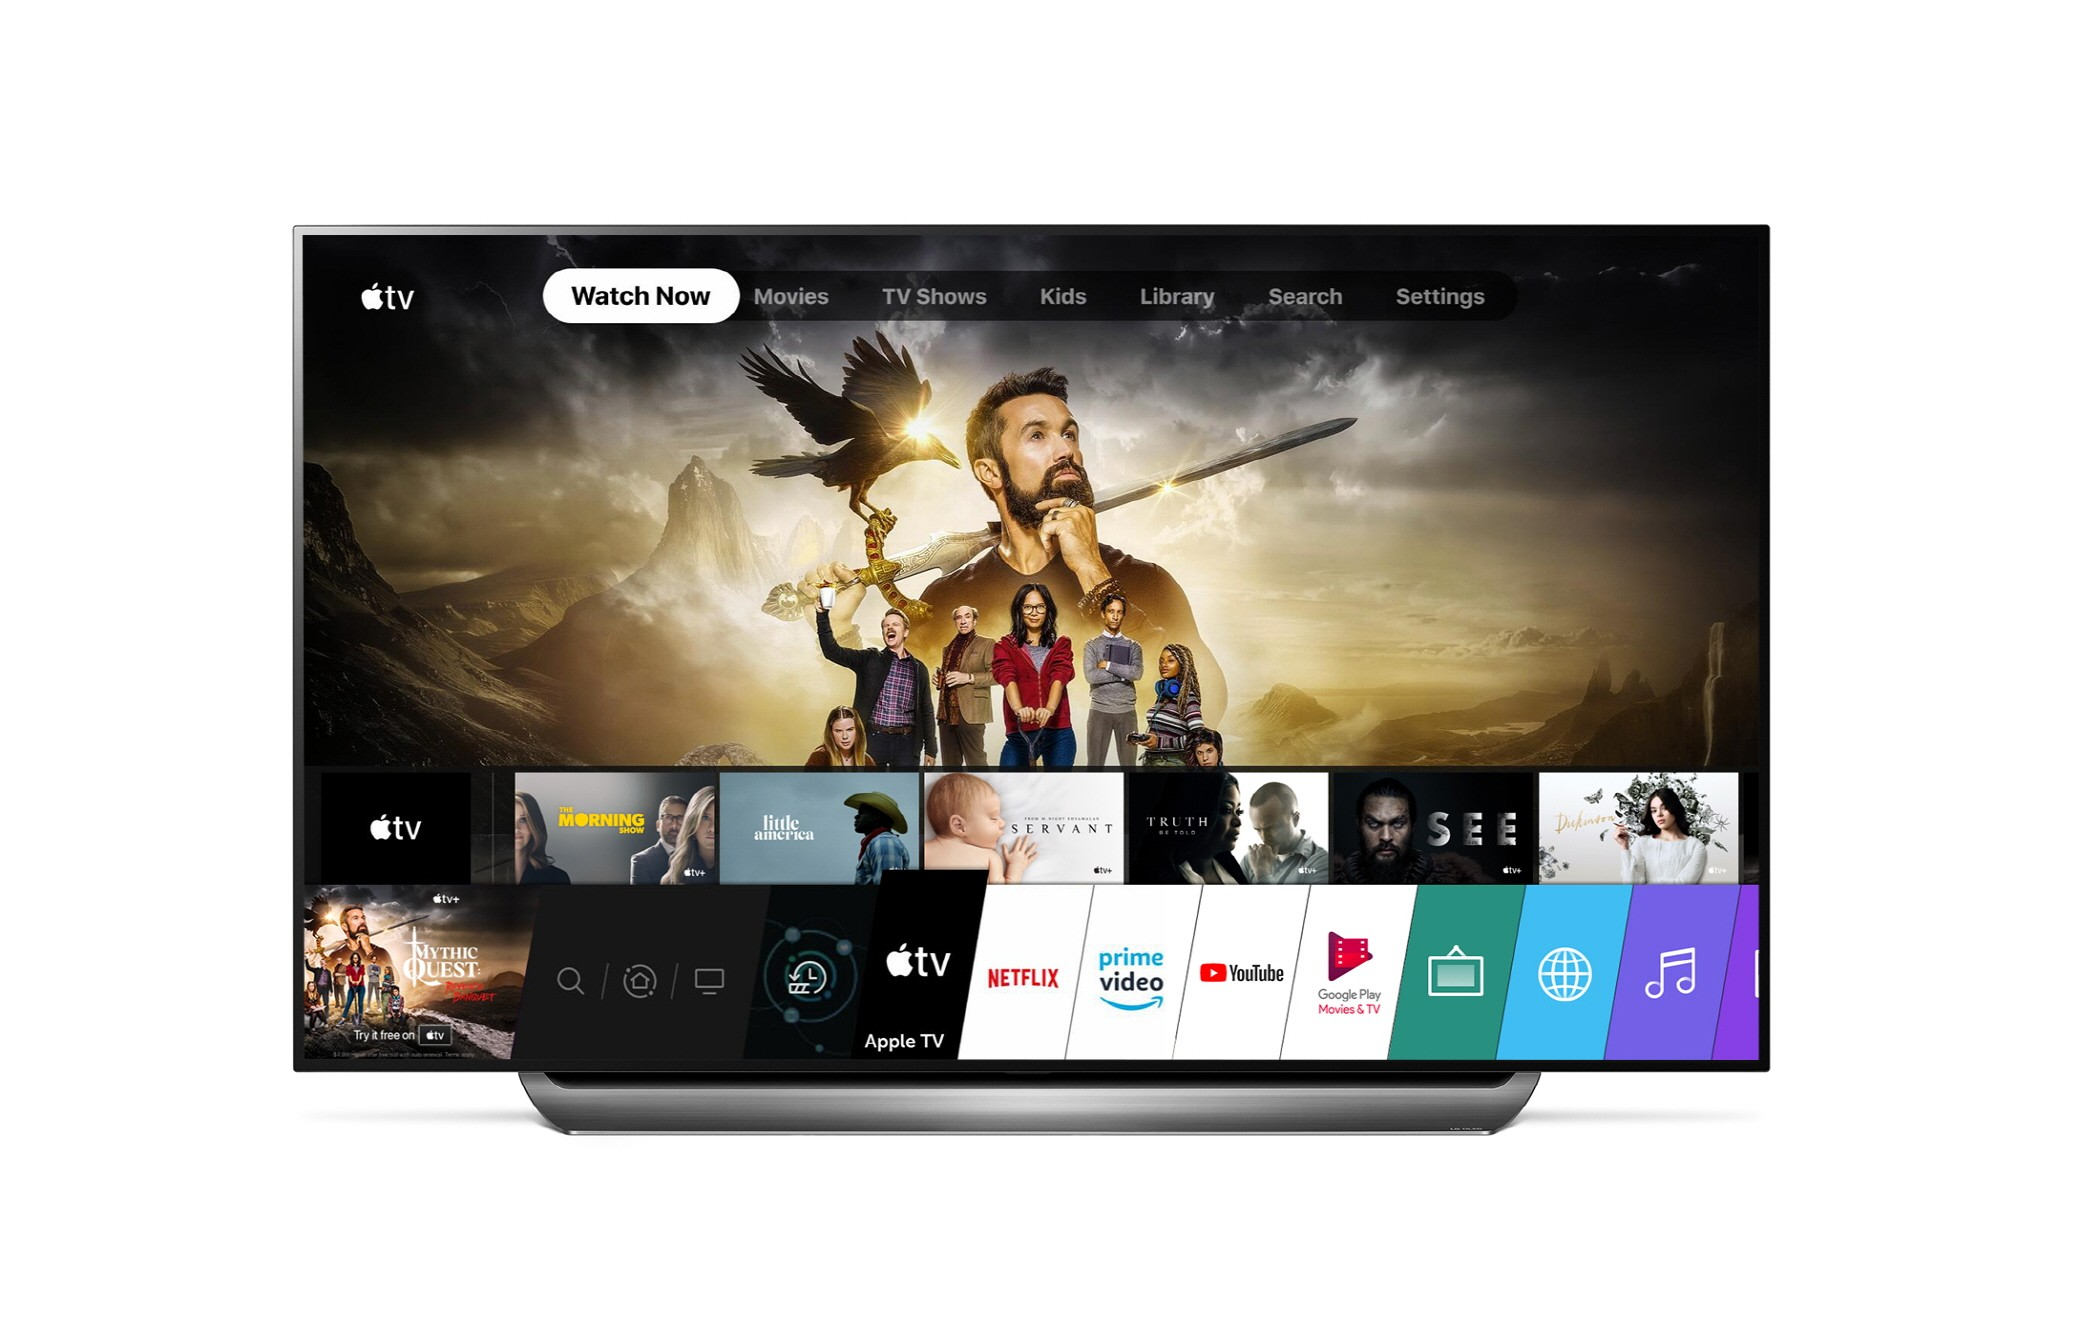 apple tv aplikacja smart tv lg webOS 2